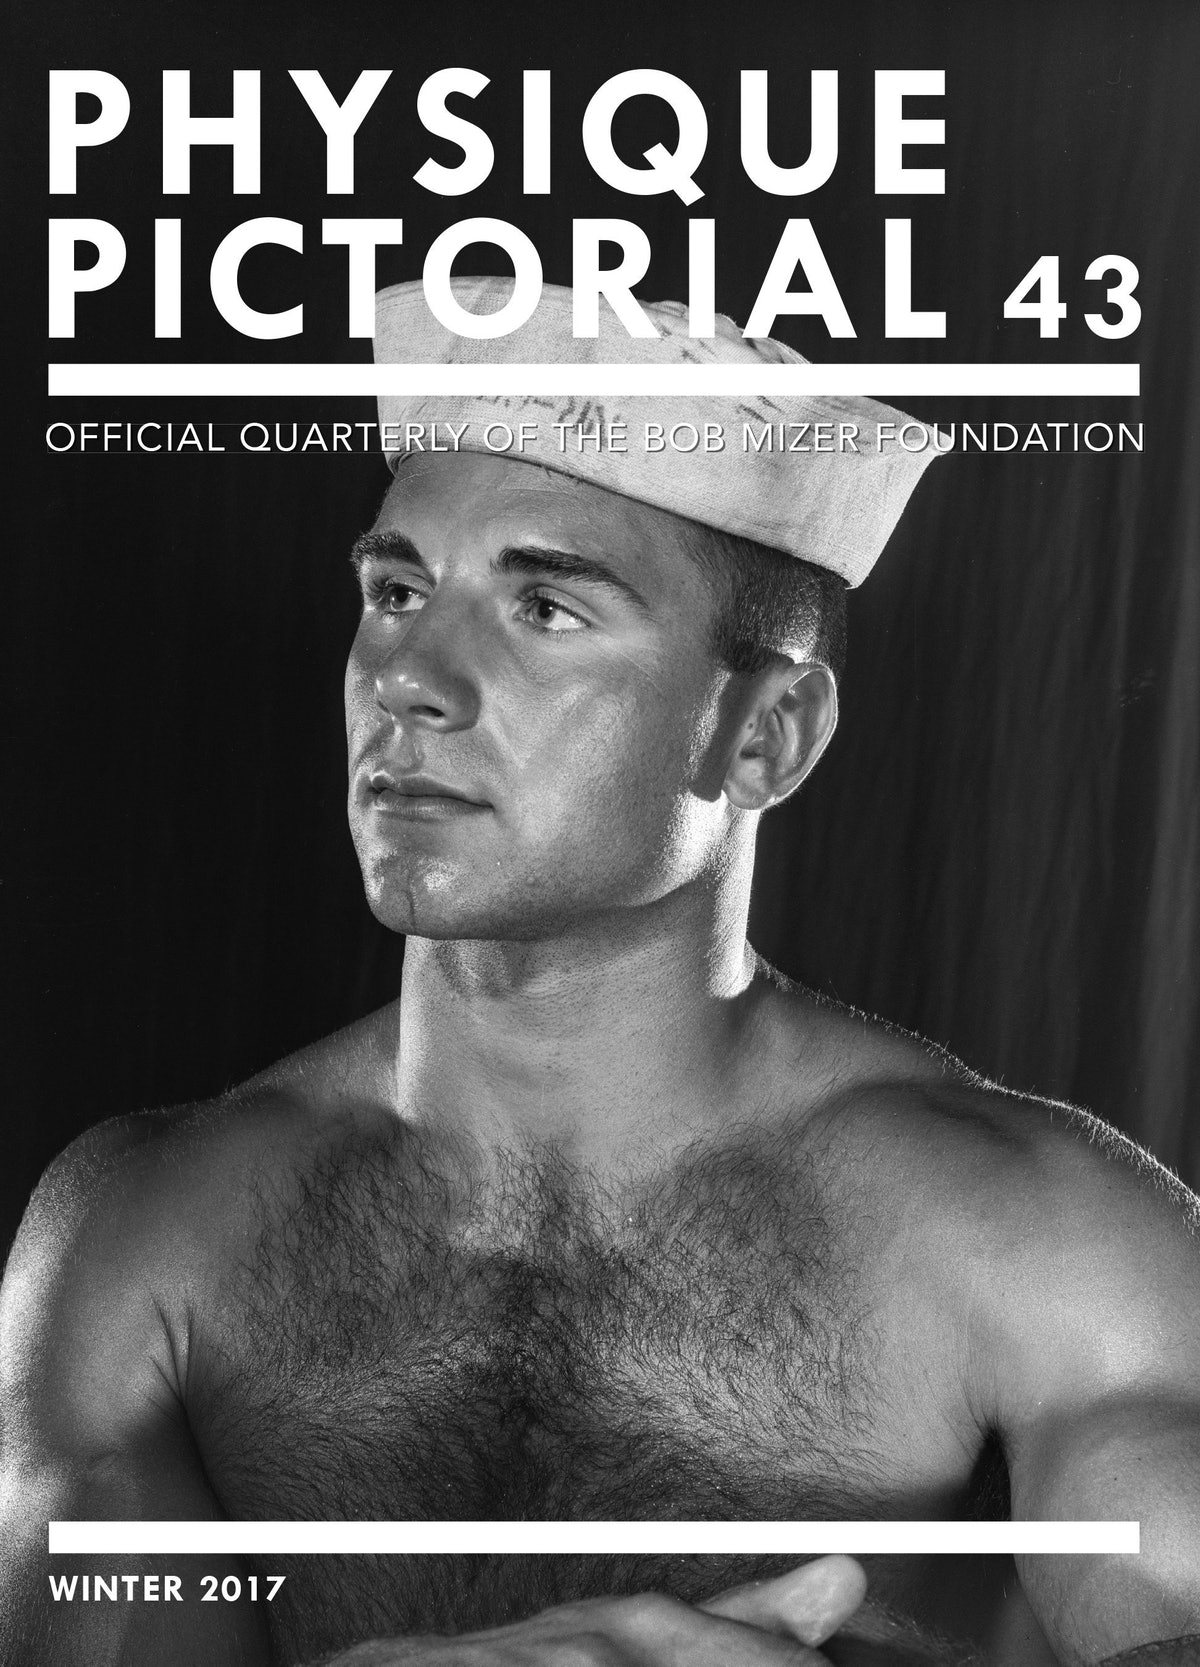 Physique Pictorial Vol 43 Cover - FrenchFlaps.indd